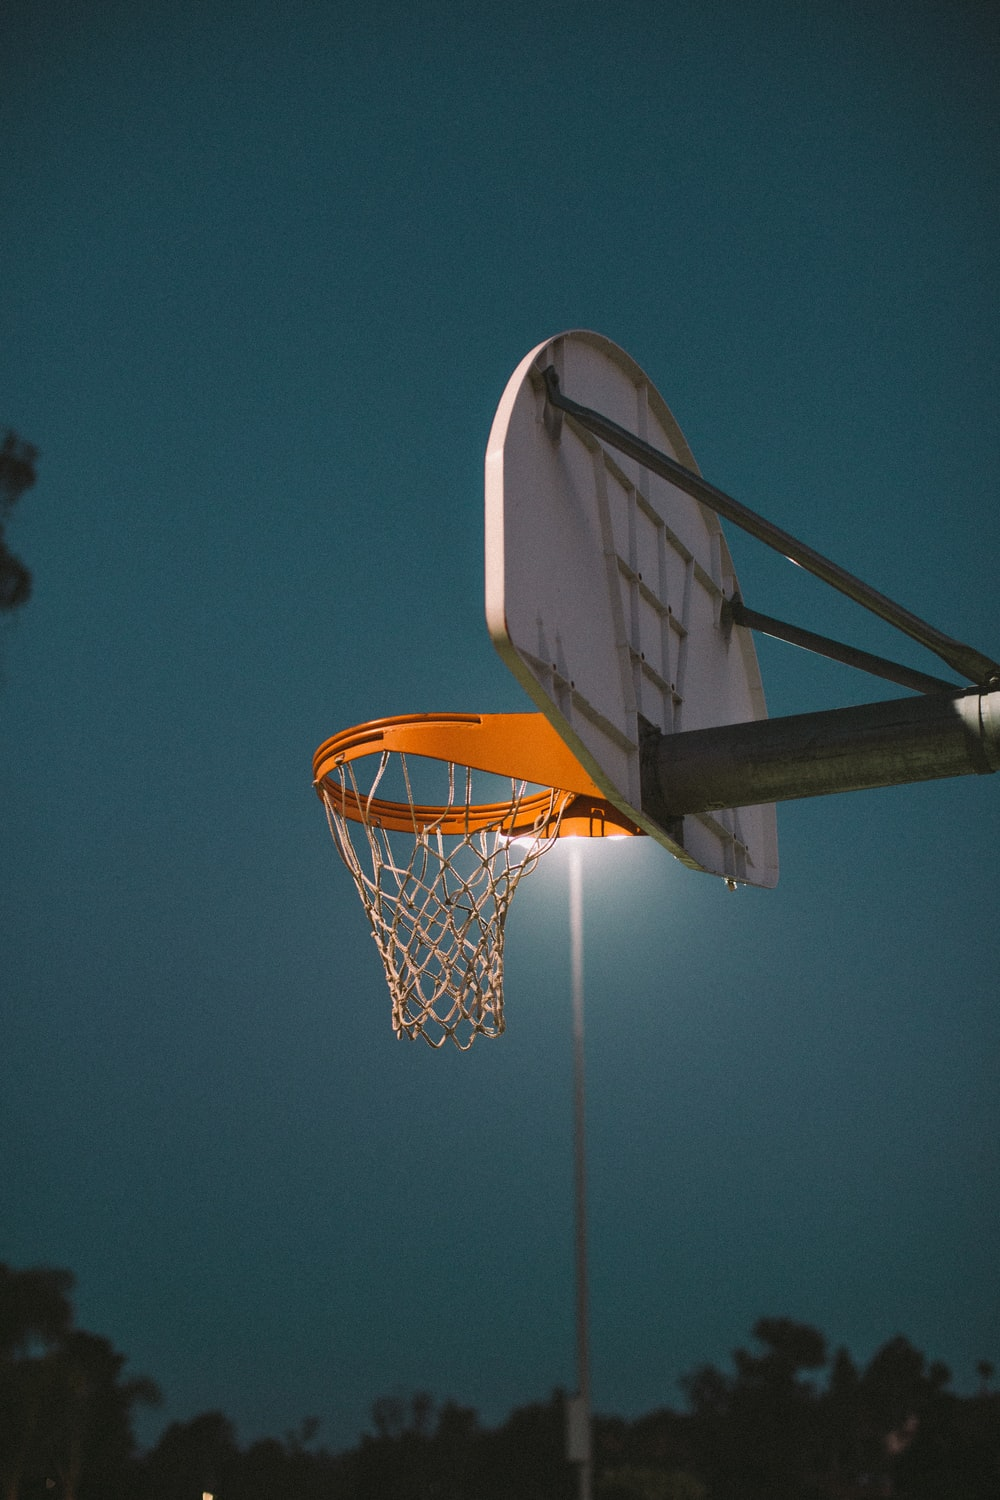 shallow focus photo of white and orange basketball hoop